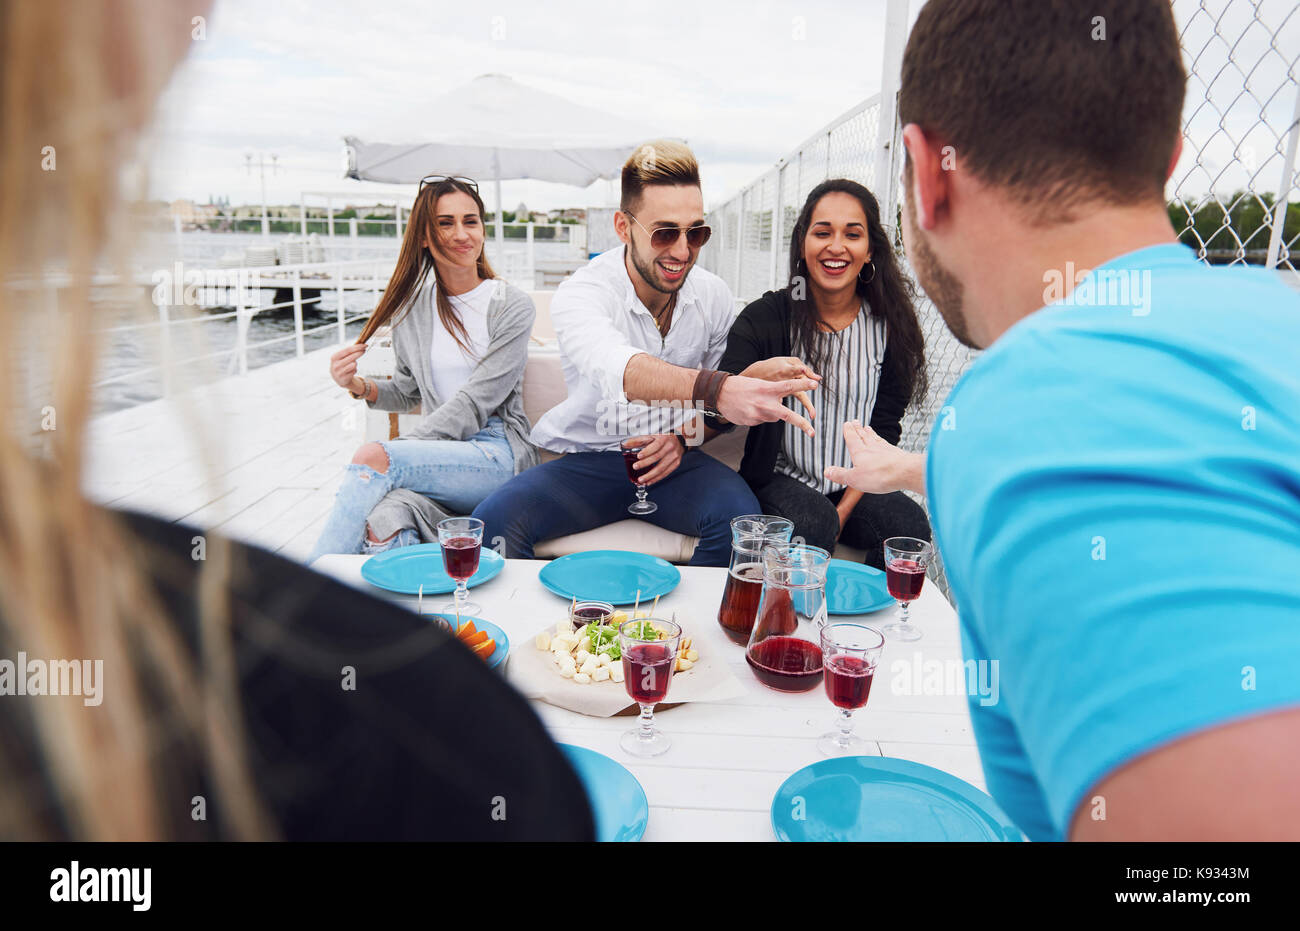 Friends birthday, a good summer sunny day - Stock Image